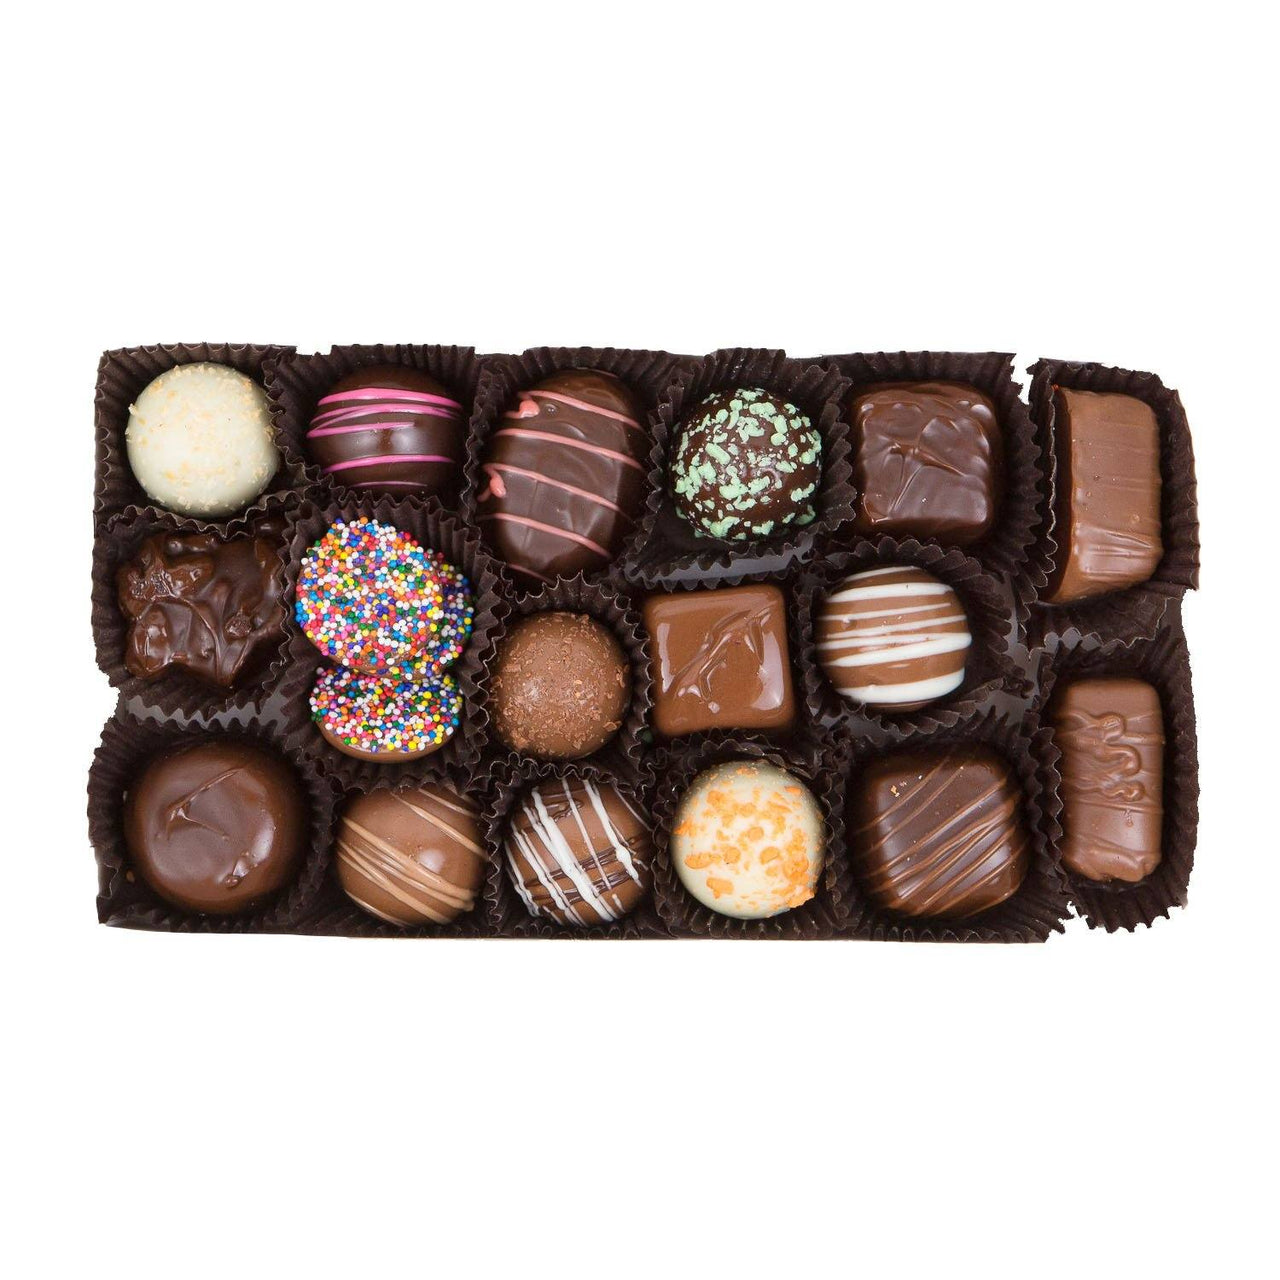 Gifts Under $20 - Assorted Chocolate Gift Box - Jackie's Chocolate (1487130886179)